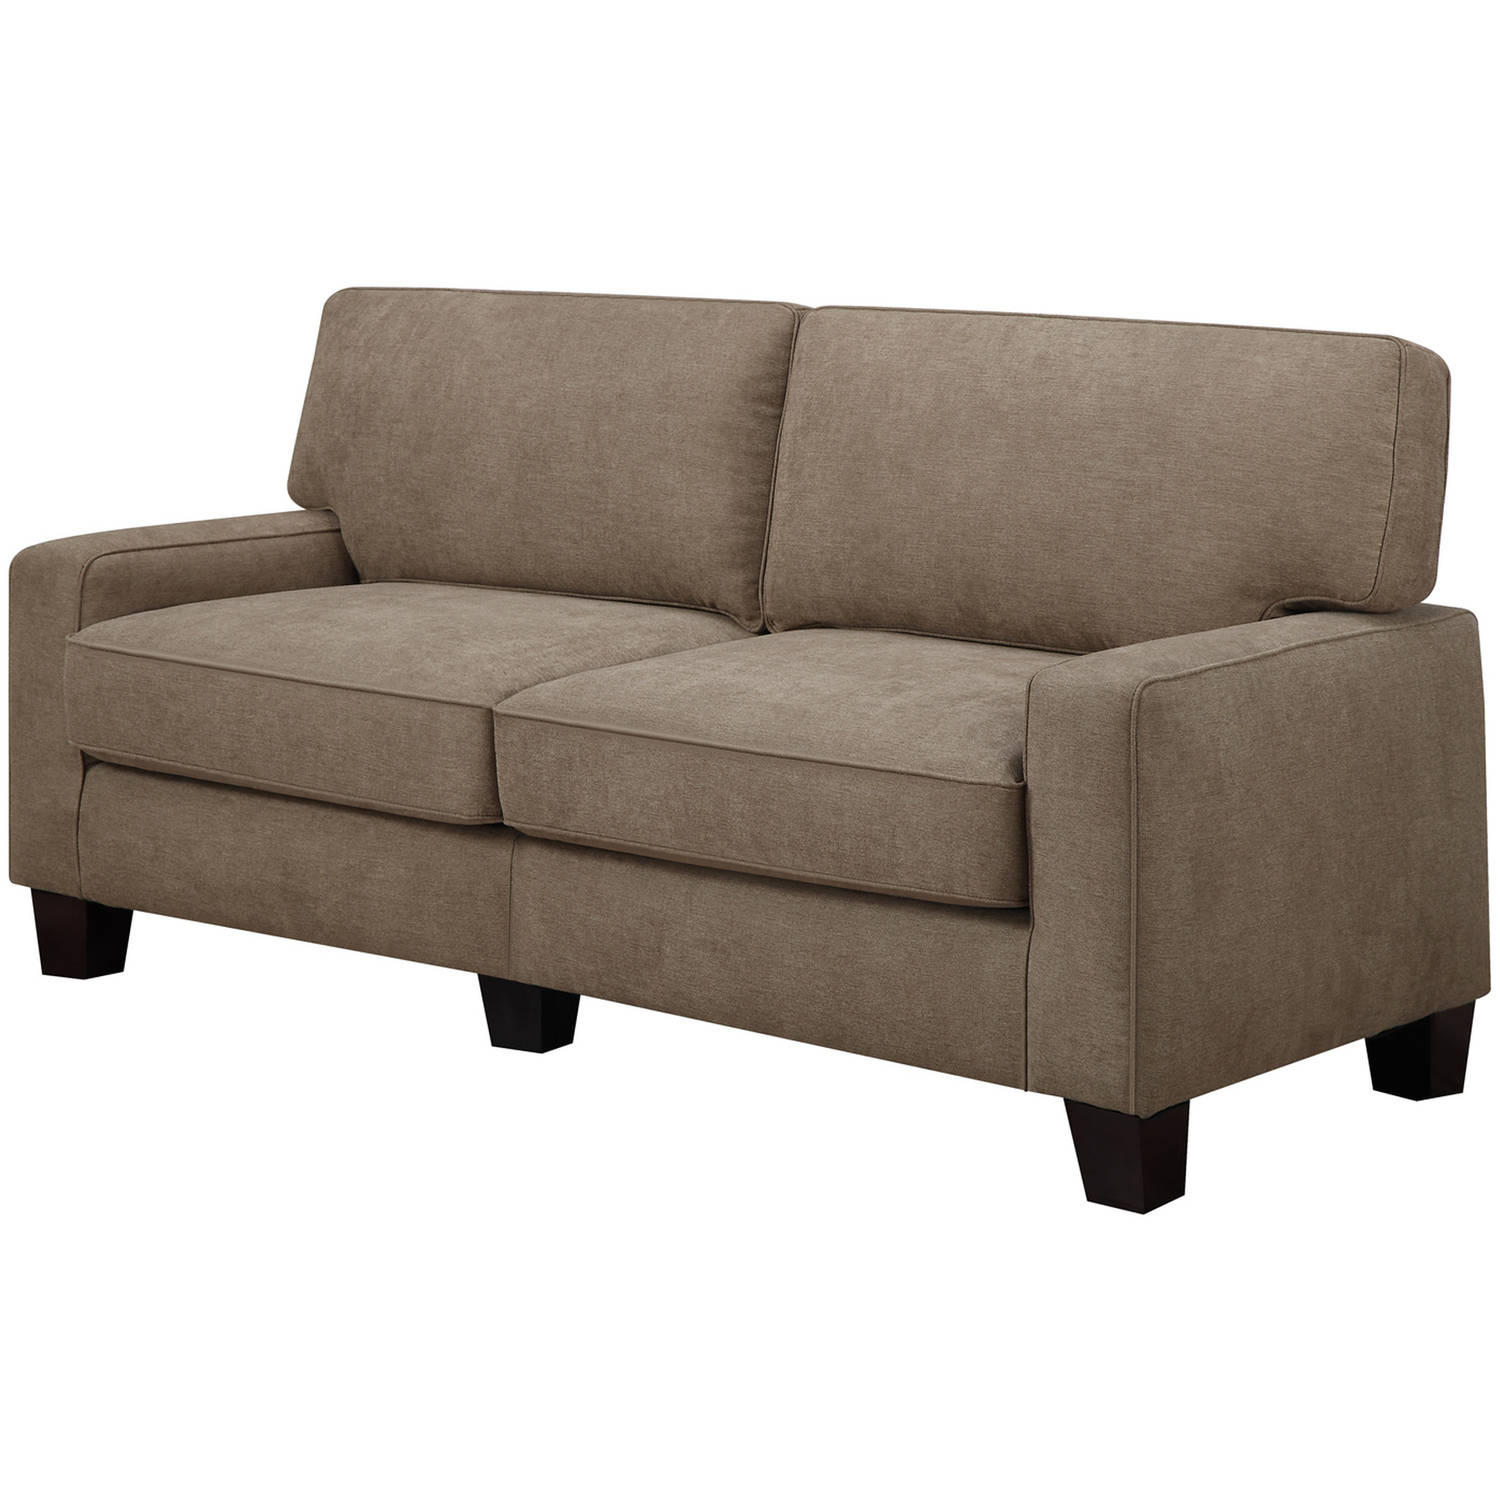 Fine Serta Rta Palisades Collection 78 Sofa Multiple Colors Short Links Chair Design For Home Short Linksinfo